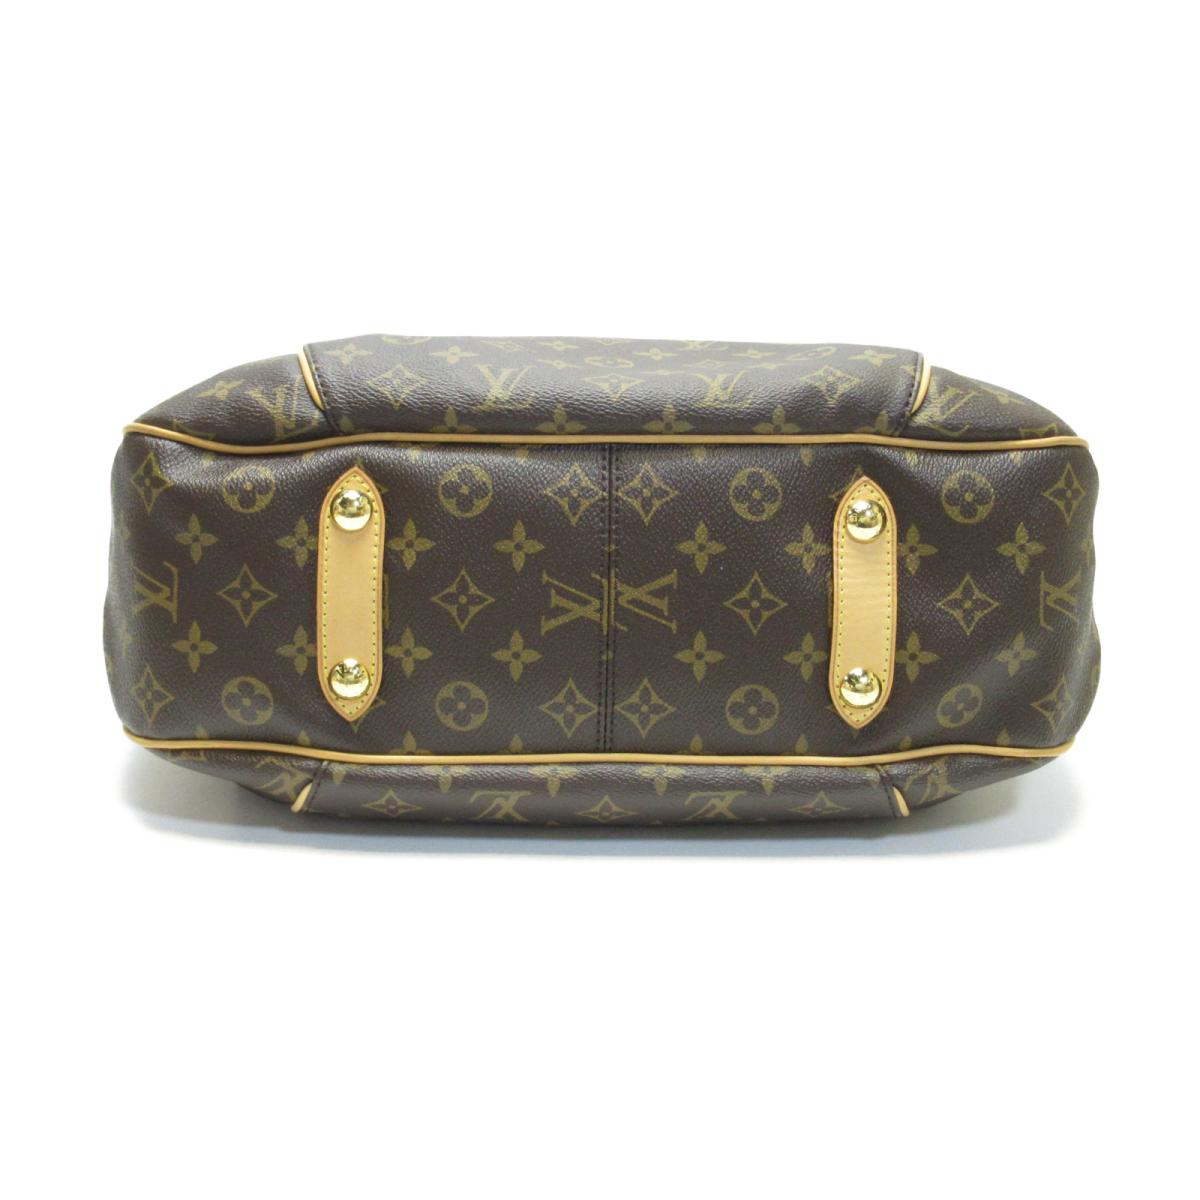 LOUIS VUITTON LOUIS VUITTON バッグ M56382 原花南瓜手提肩背包Galliera PM M56382